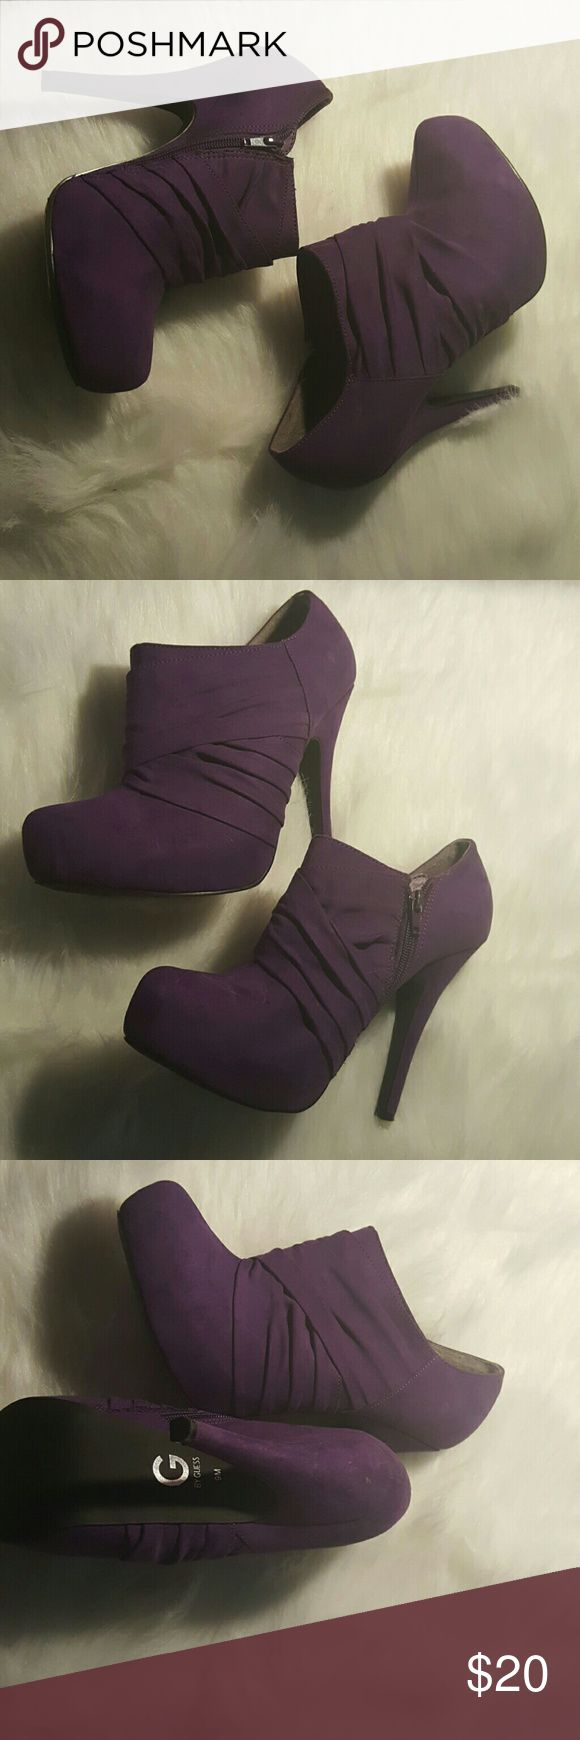 G By Guess Stylish  Purple Ankle Boots G By Guess Purple Ankle Boots || Soft || Comfortable || 5 inch heel || Gently Worn || Have been in Storage so there are some small blemishes|| Overall very good condition G by Guess Shoes Ankle Boots & Booties